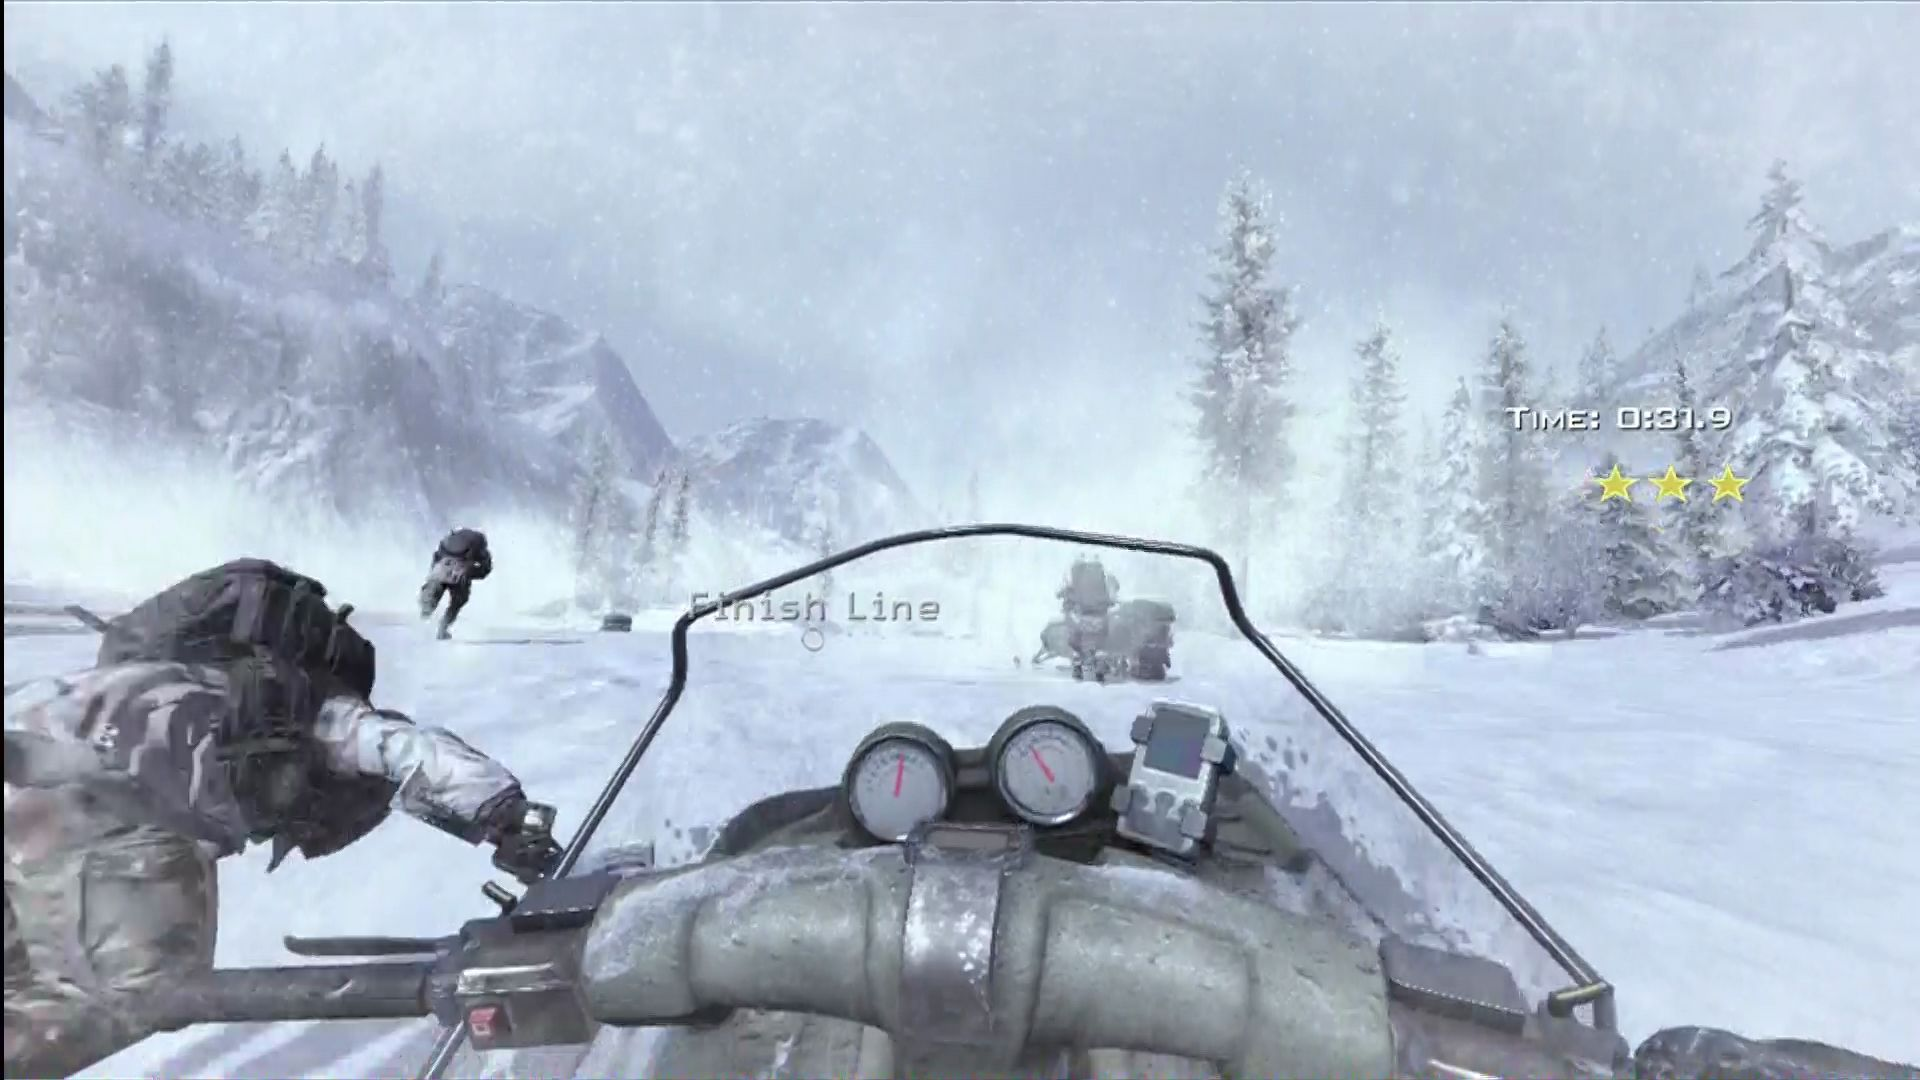 Call of Duty: Modern Warfare 2 Xbox 360 A race mission in Special Ops, based off a scene in the campaign.